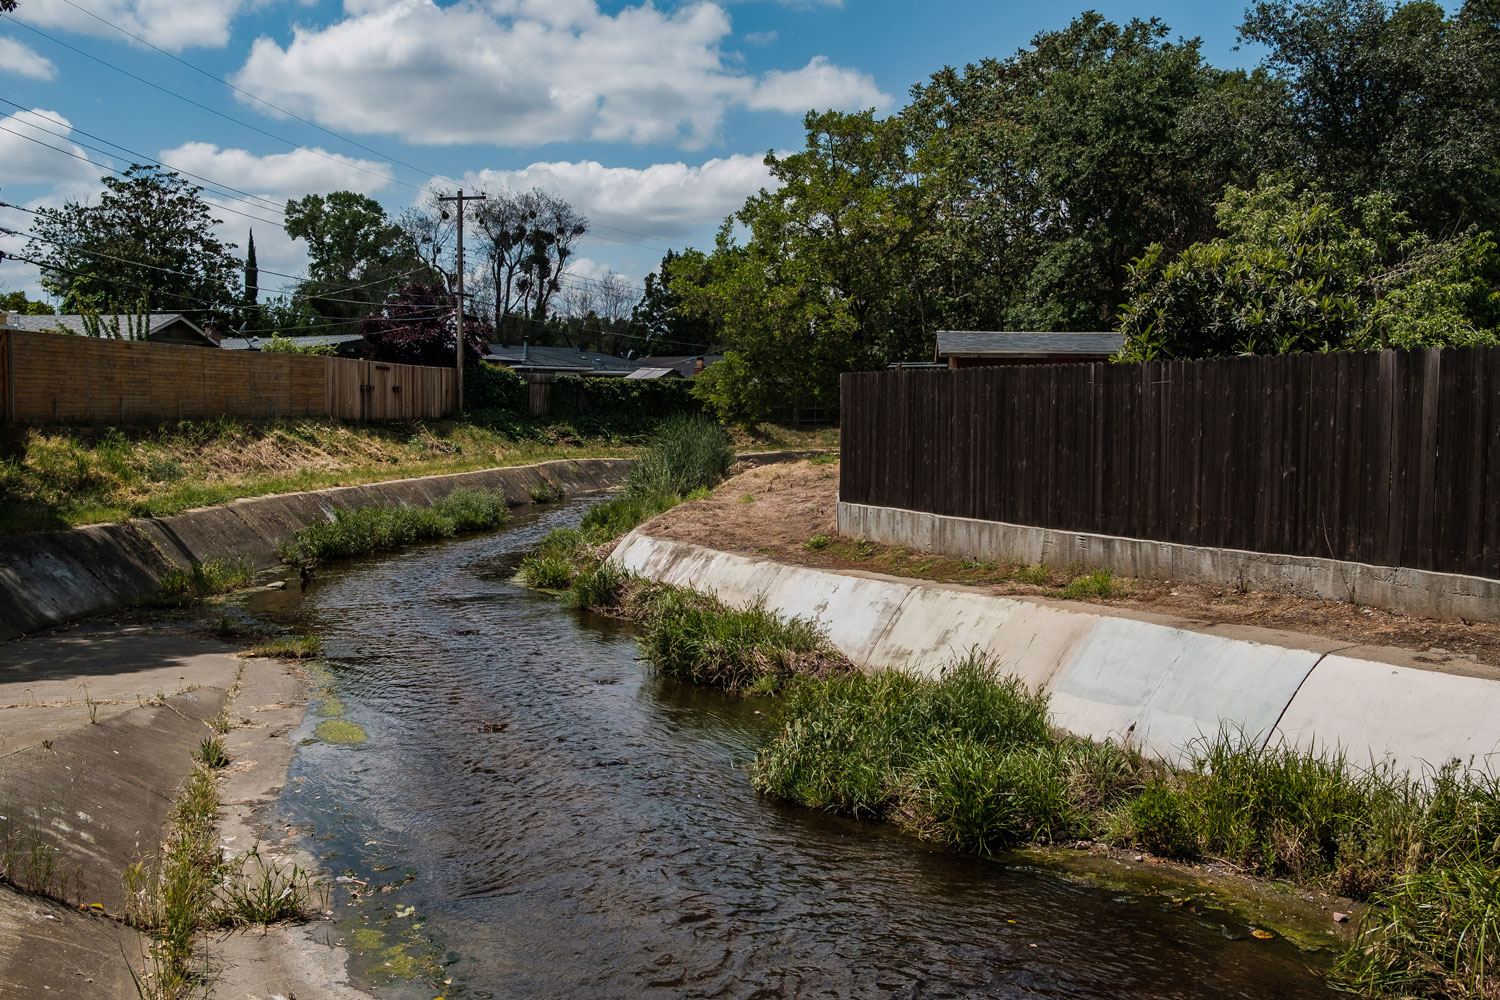 Rancho Cordova, CA - April 27: A drainage canal in a neighborhood of Rancho Cordova where the East Area Rapist would hide in order to elude authorities when he was terrorizing the area. (Photo by Nick Otto for the Washington Post)